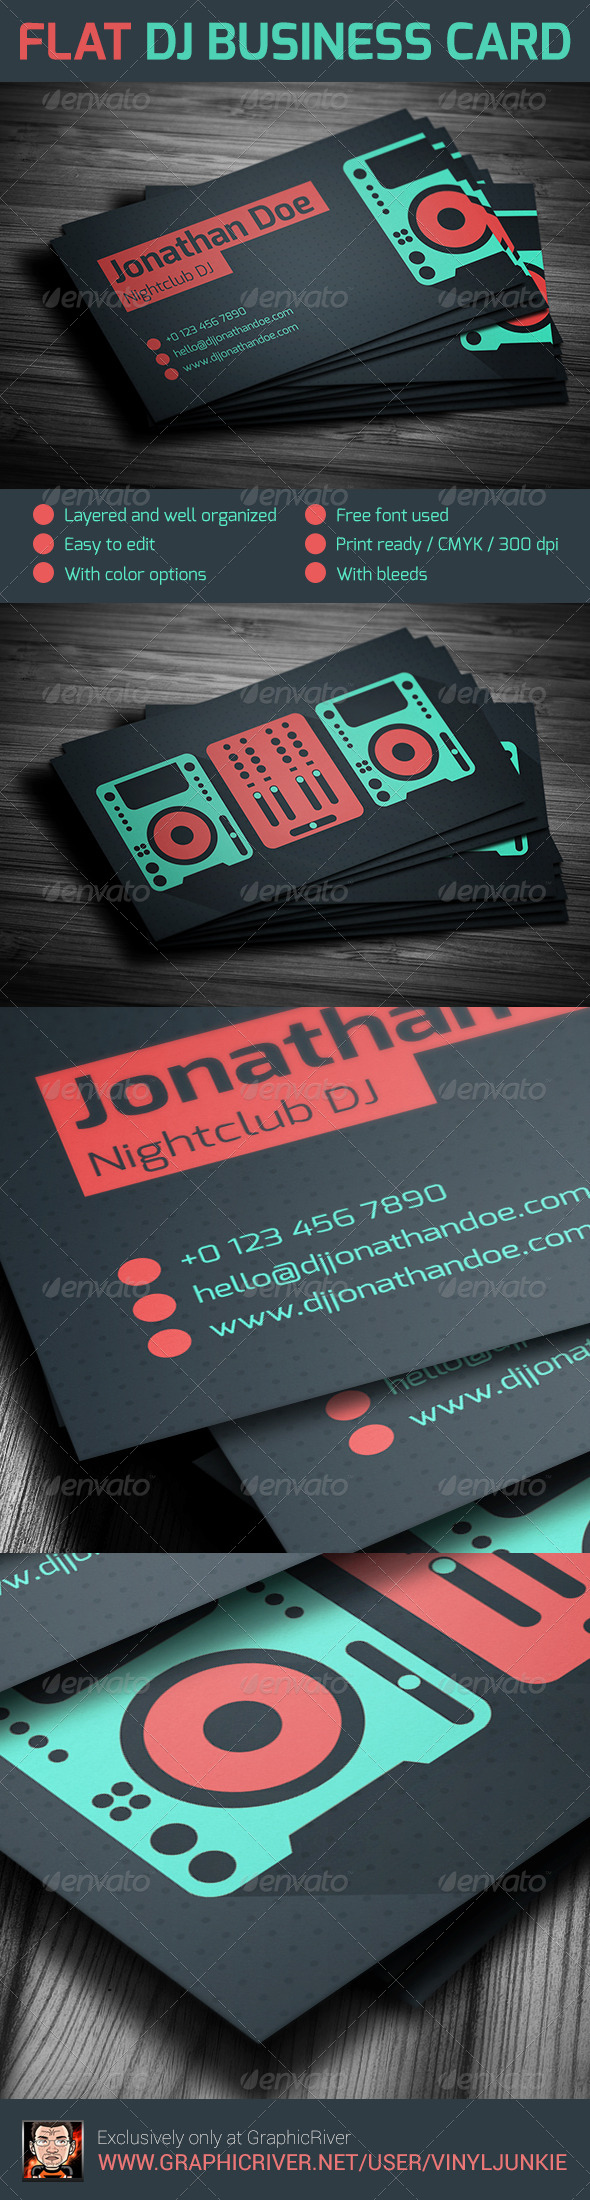 Flat DJ Business Card - Industry Specific Business Cards